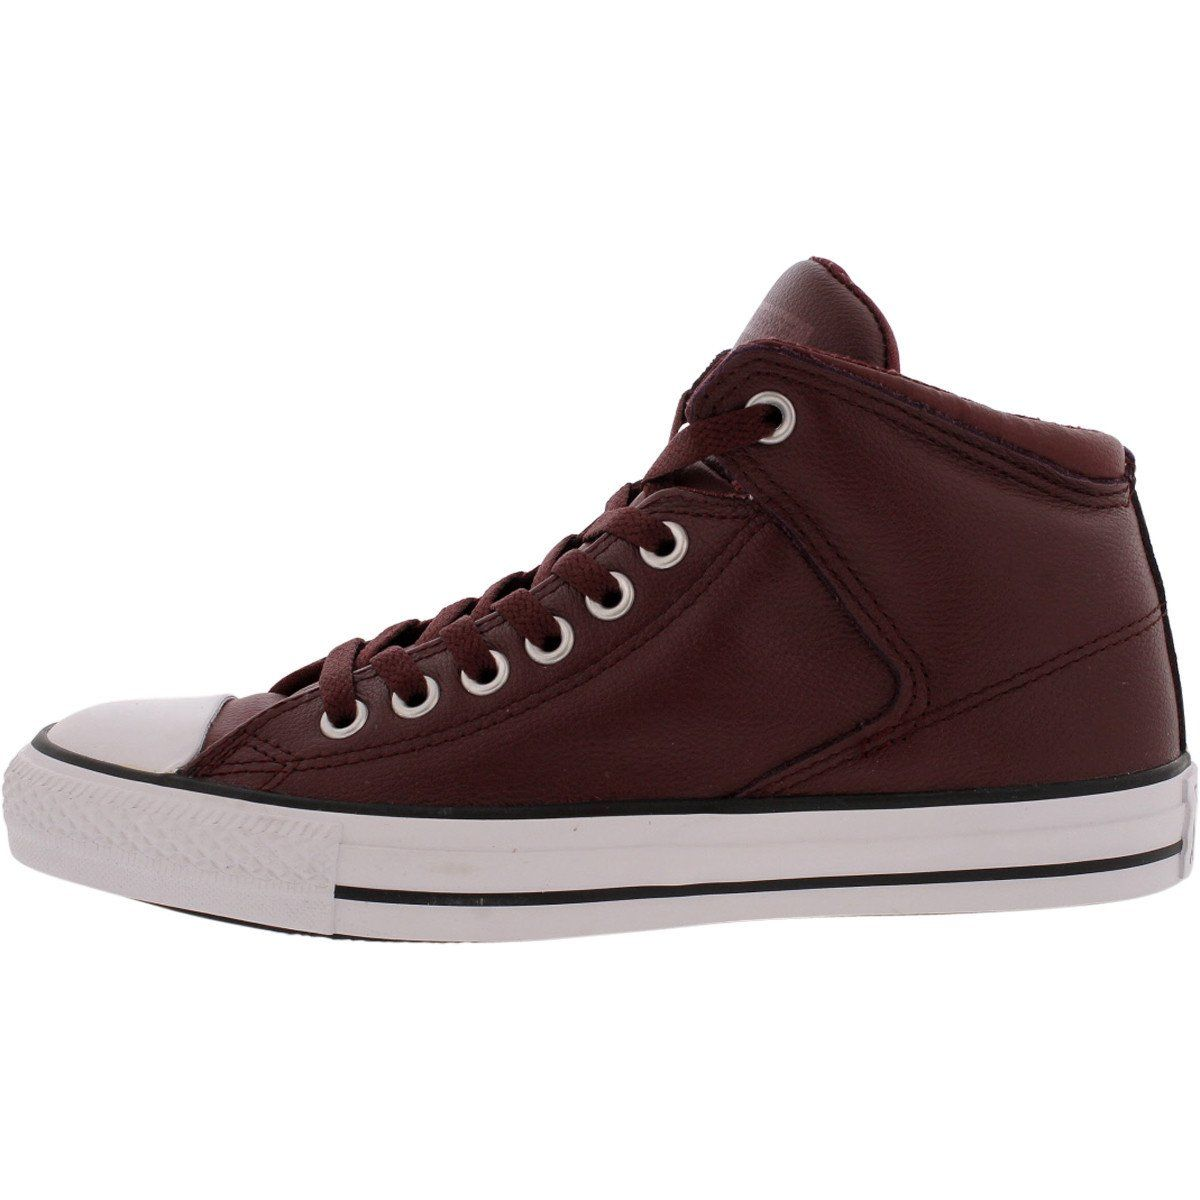 26ca3acb8c9c Converse - CT All Star High Street Mid Leather Sneaker -Deep Bordeaux